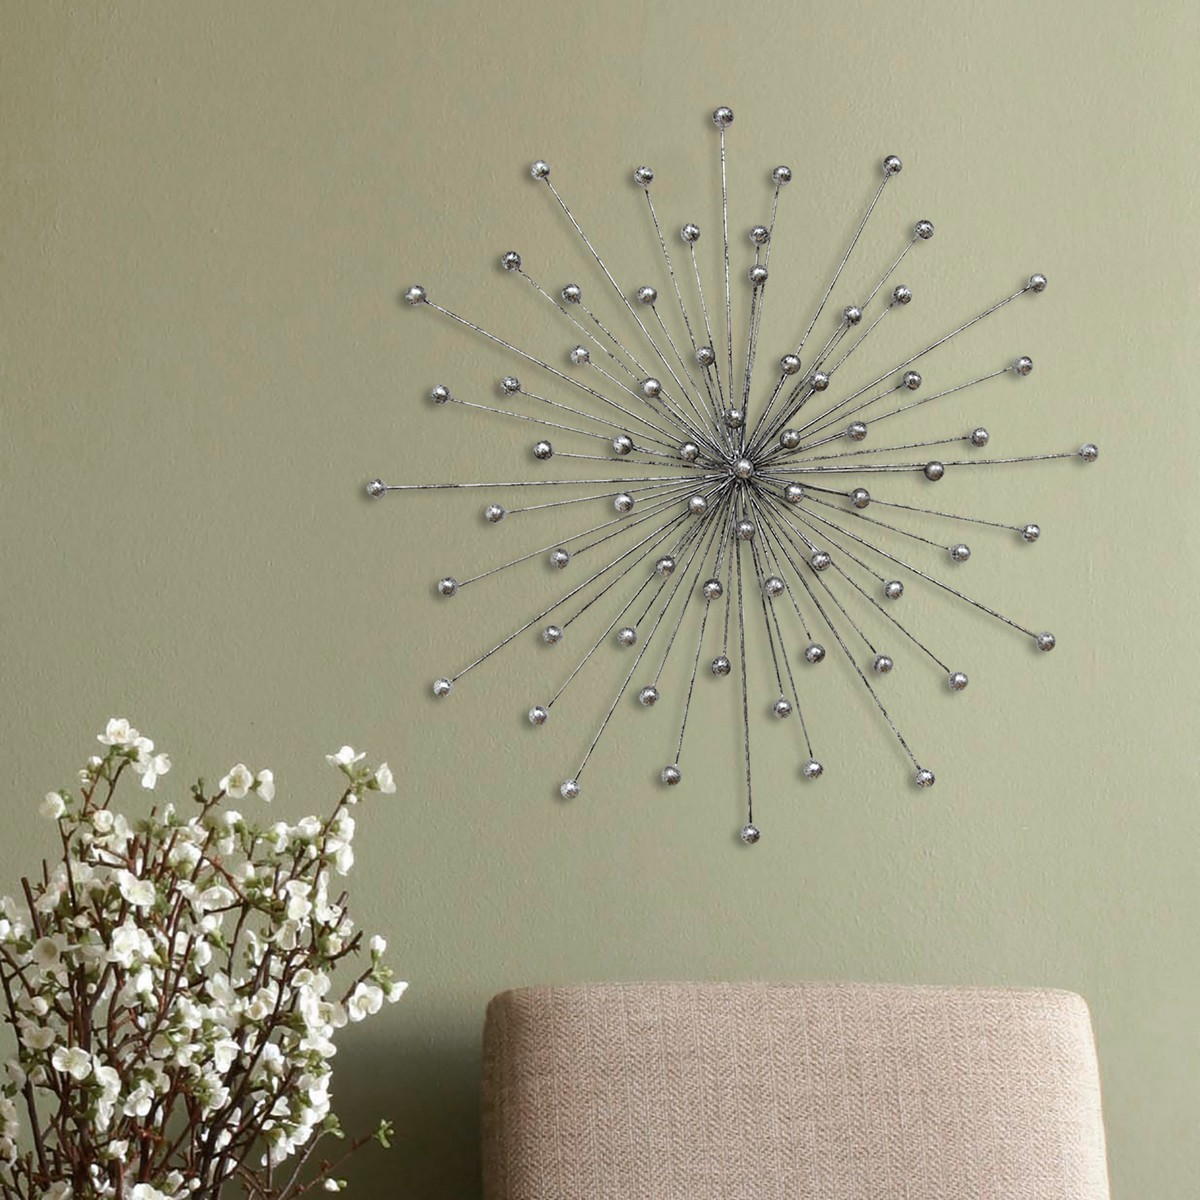 Stratton Home Decor Silver Burst Wall Decor - Silver